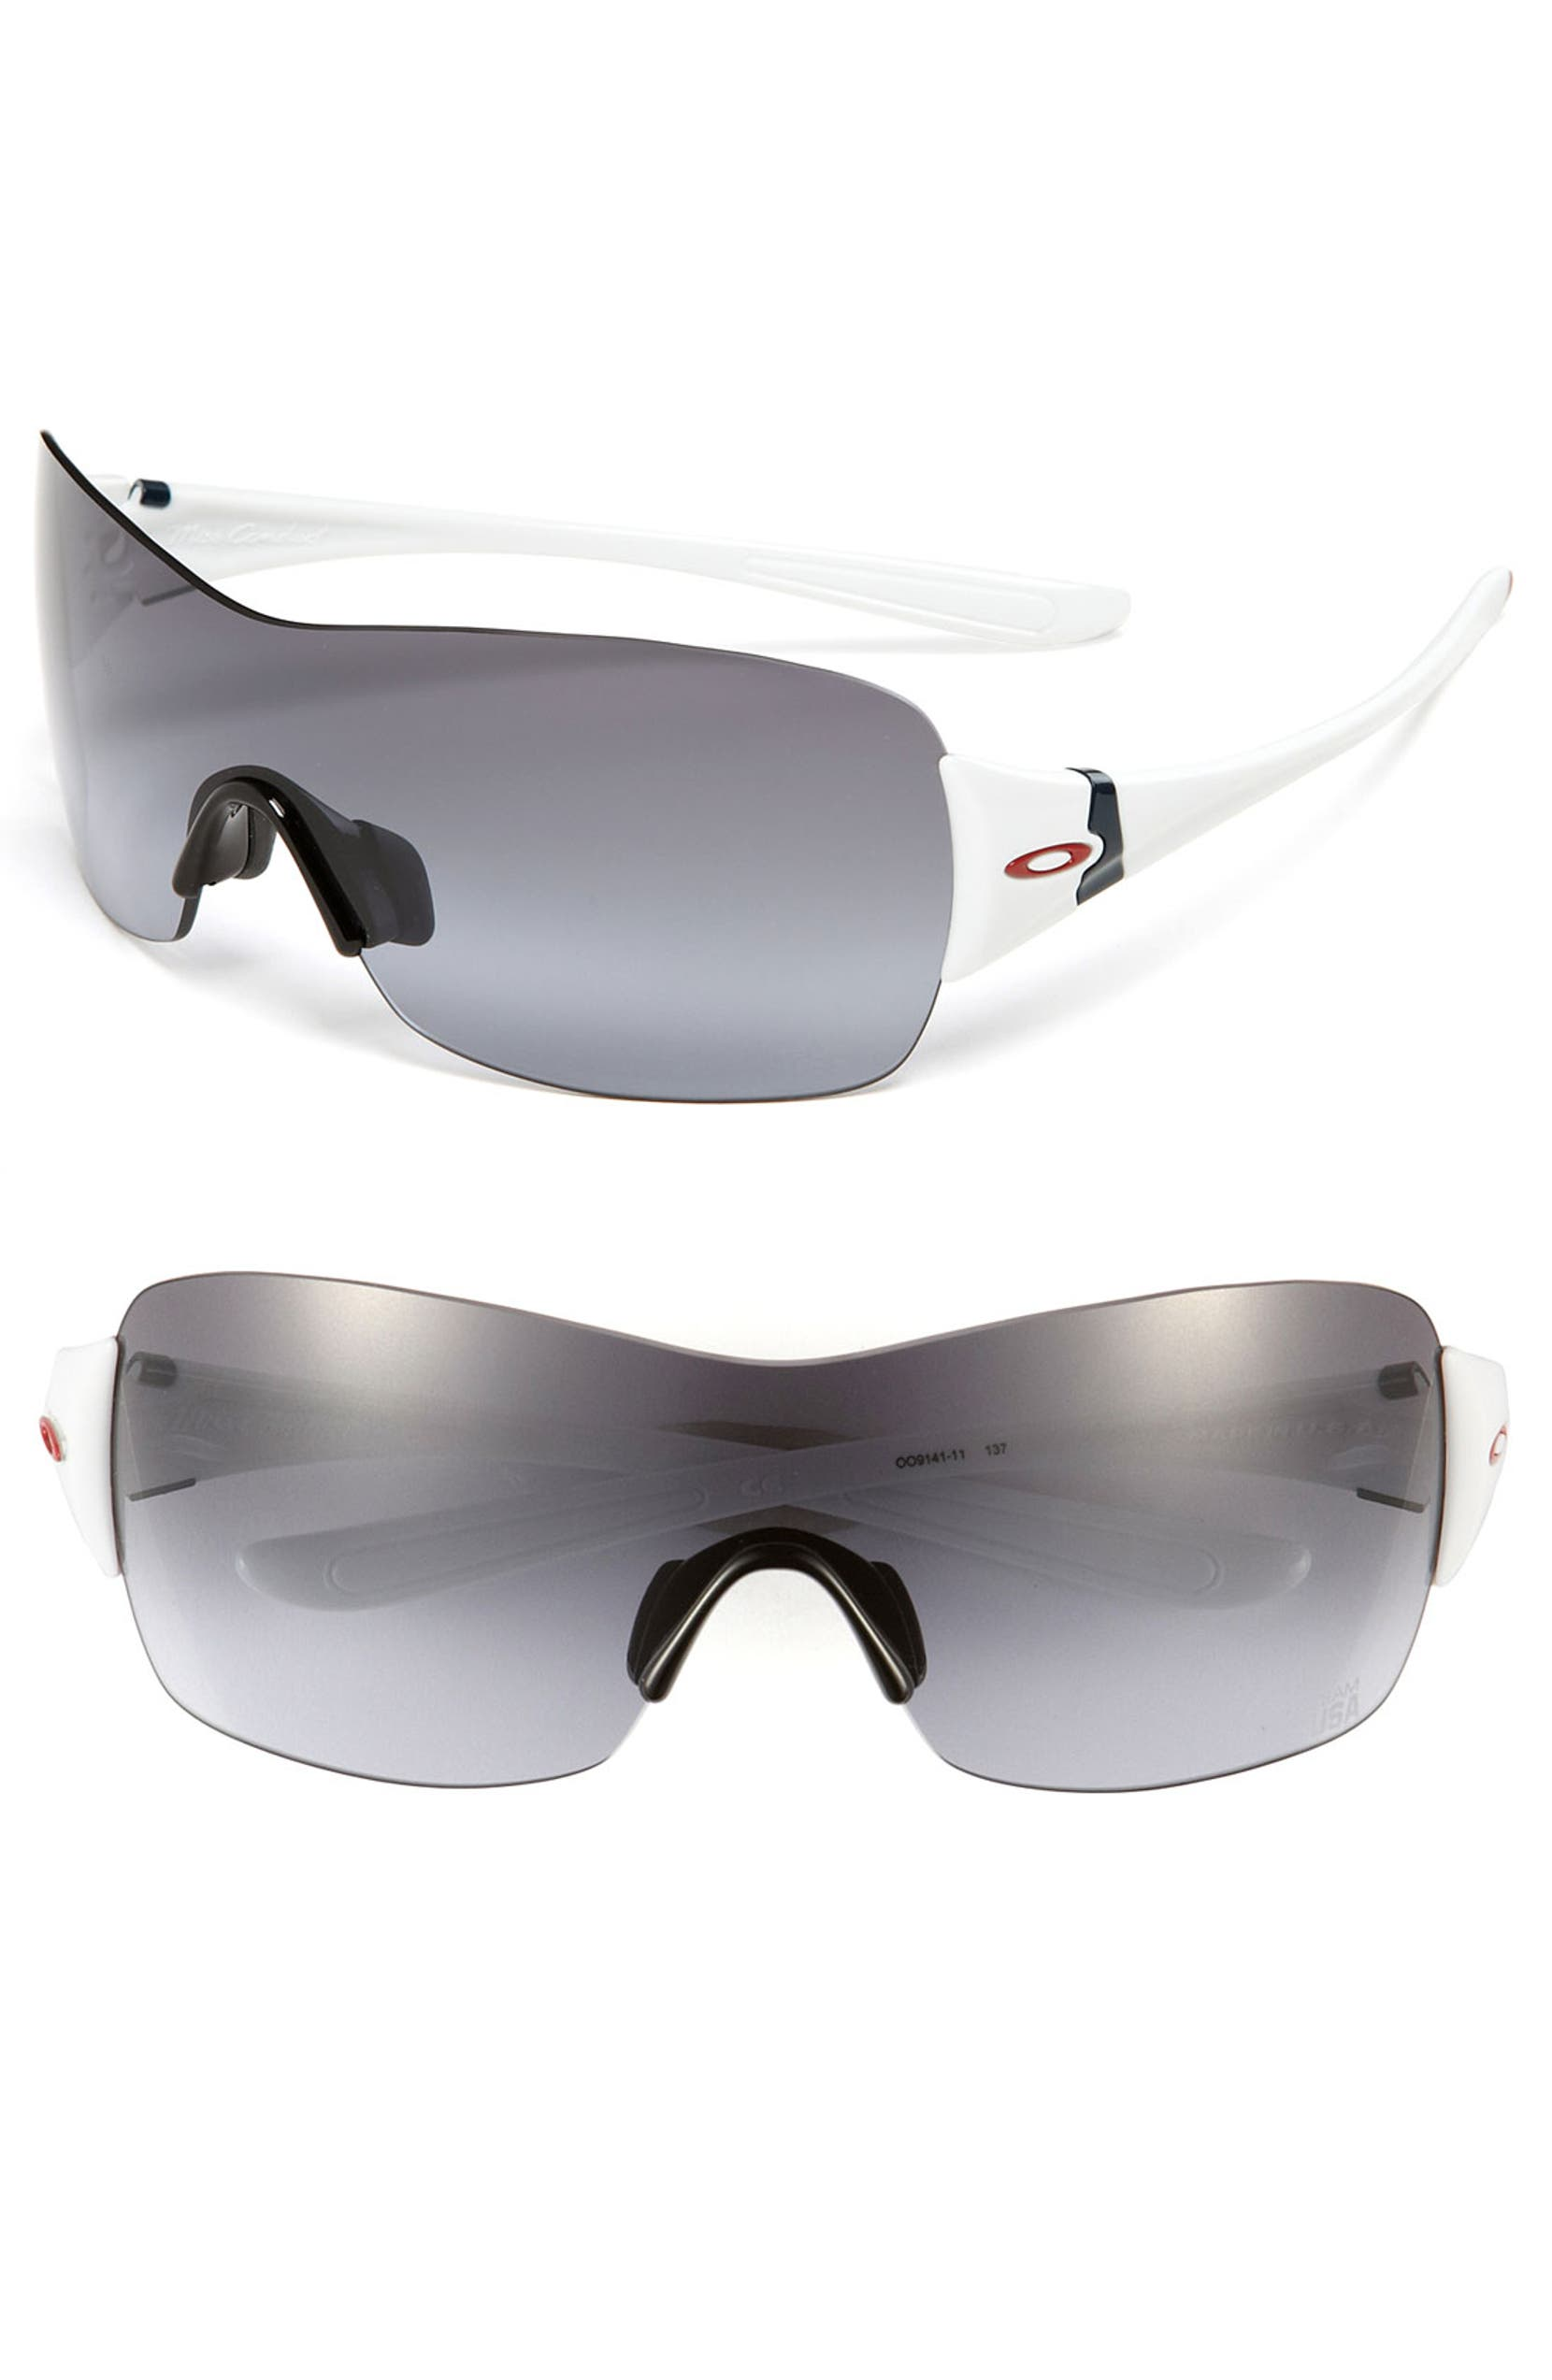 653c6504669 Oakley Sunglasses Miss Conduct « One More Soul